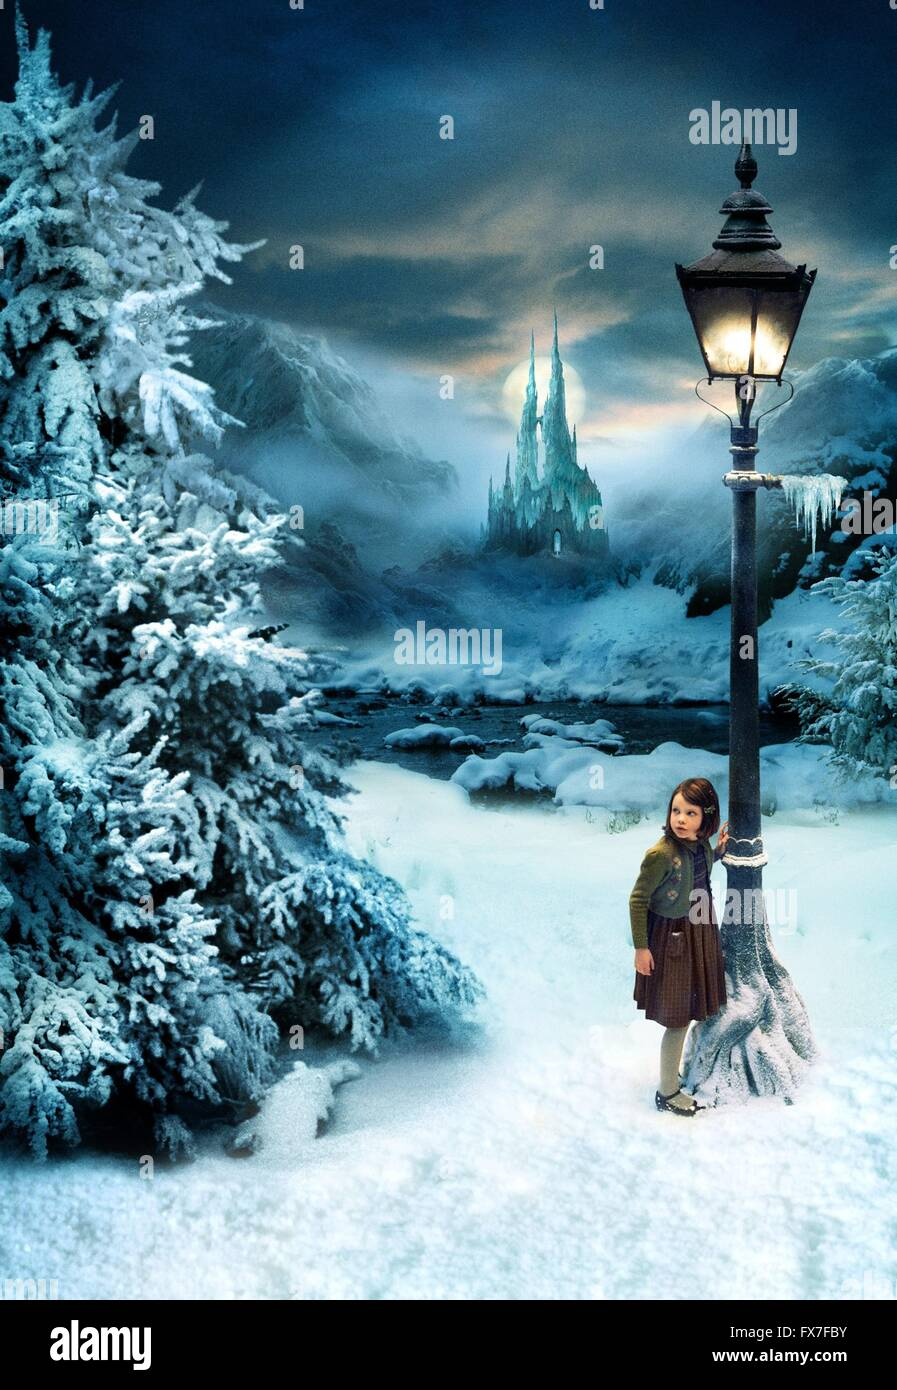 Narnia High Resolution Stock Photography And Images Alamy